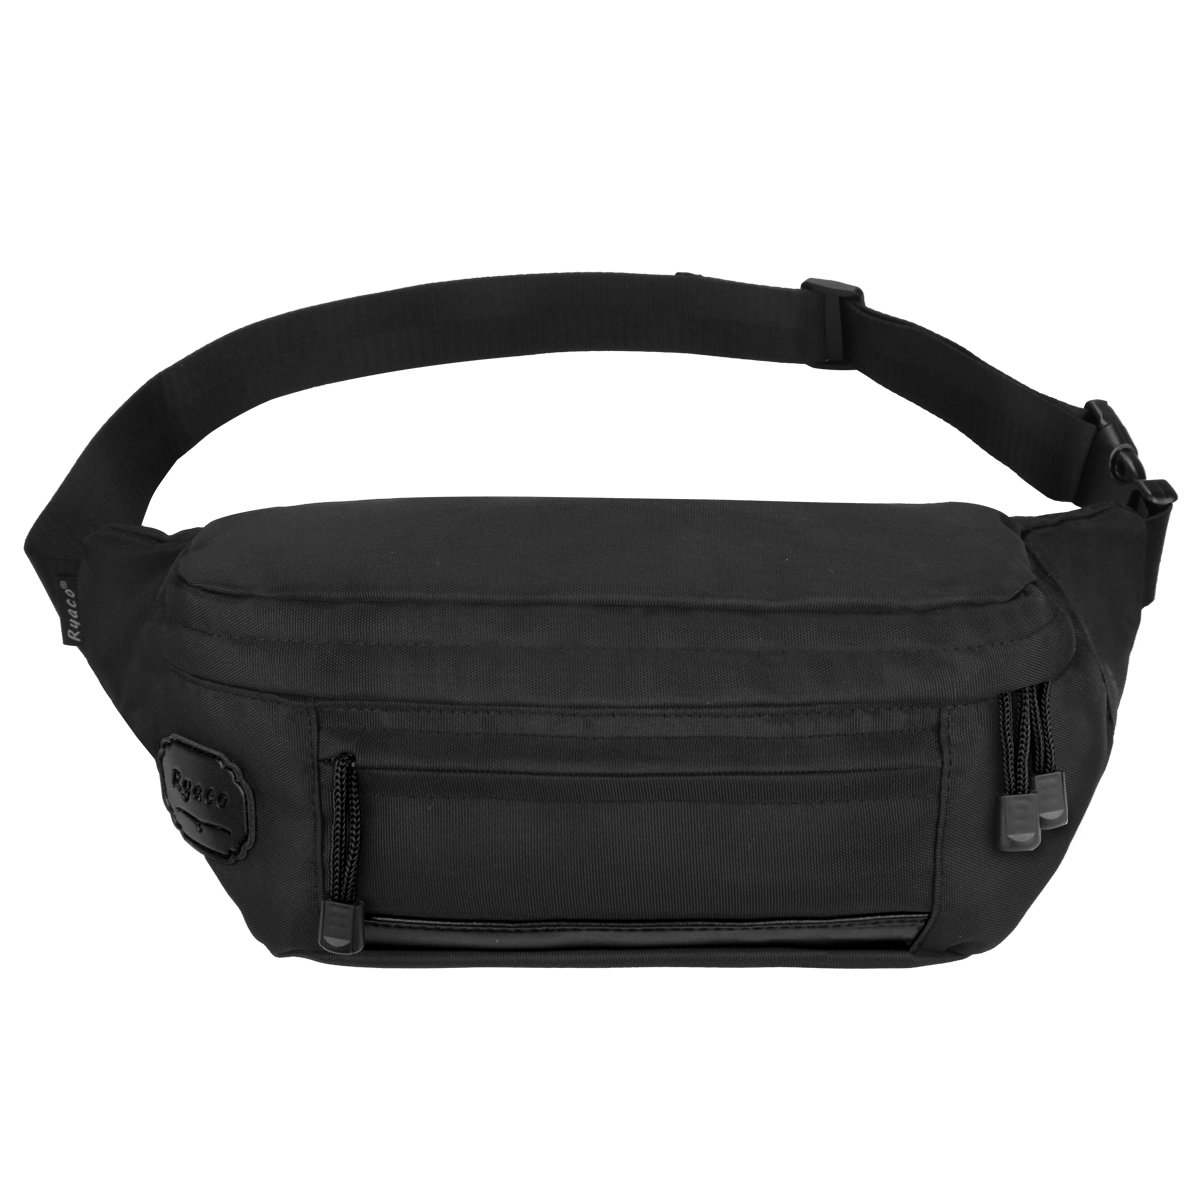 Ryaco Waist Pack, Fanny Pack Hip Bum Bag for Men and Women with Big Pocket for Outdoor Sports Workout Hiking product image